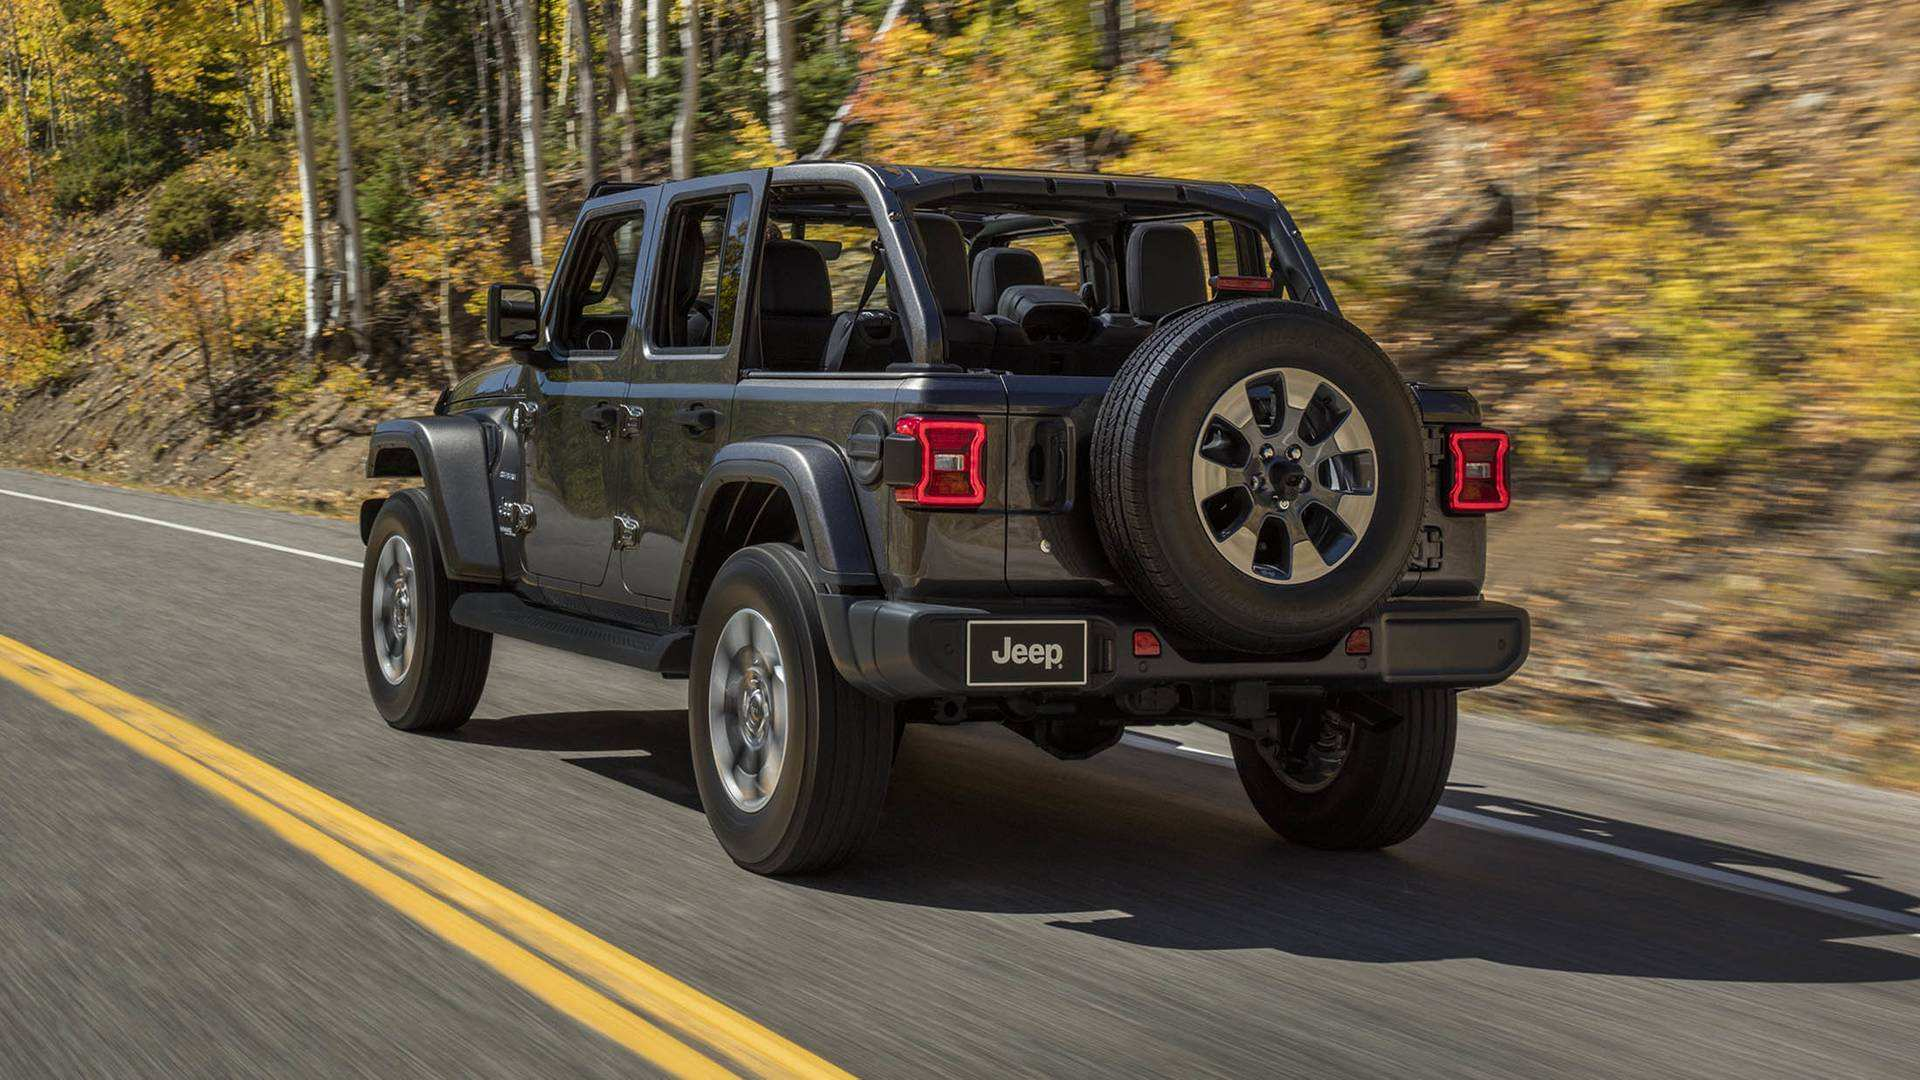 61 All New Jeep Hybrid 2020 Performance for Jeep Hybrid 2020